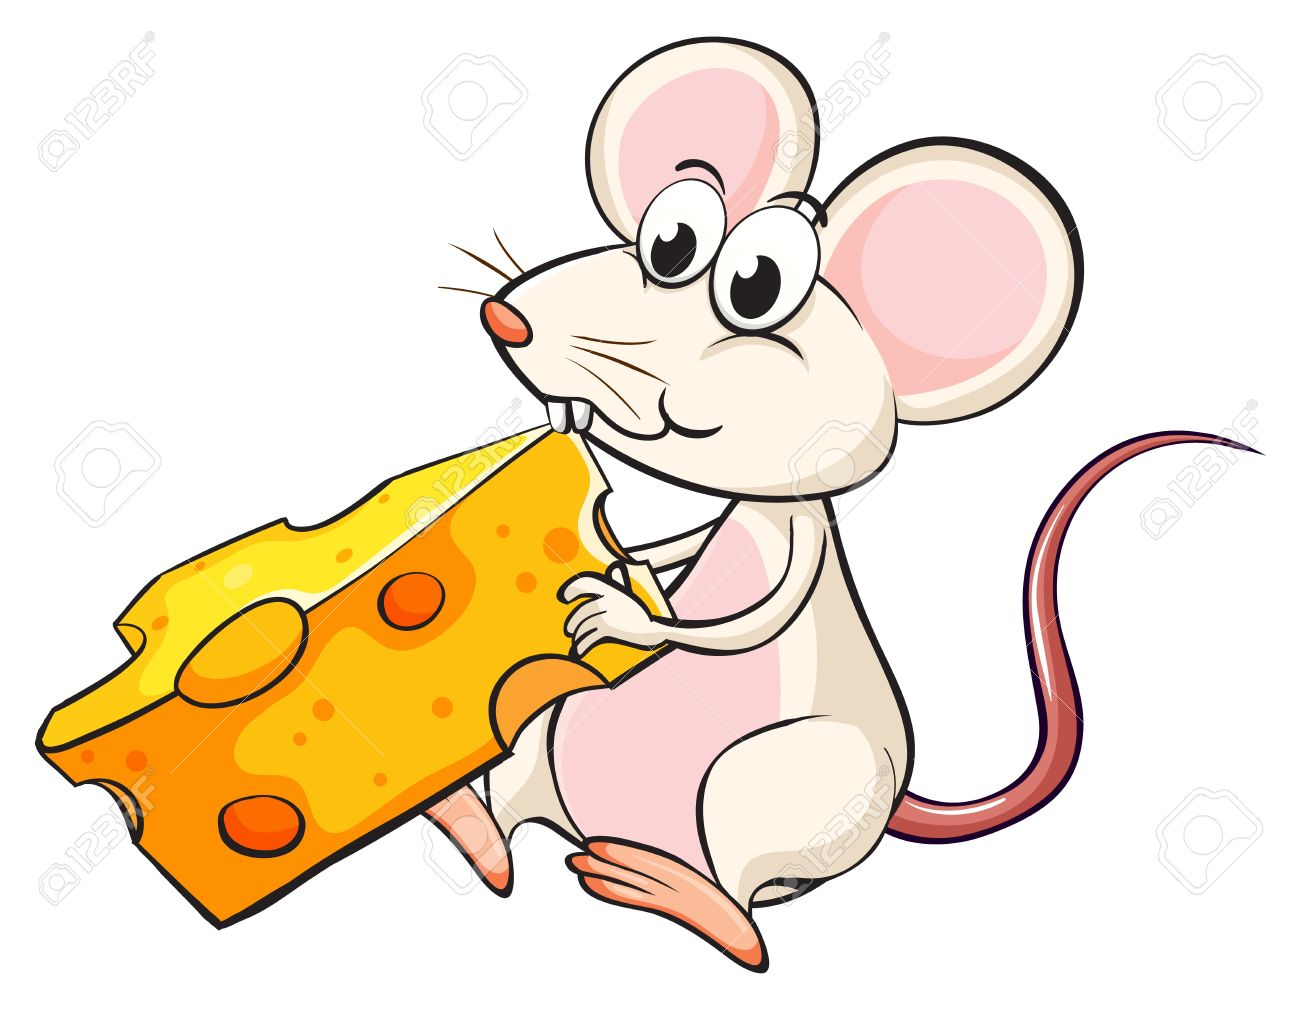 1300x1010 12,187 Rat Stock Vector Illustration And Royalty Free Rat Clipart